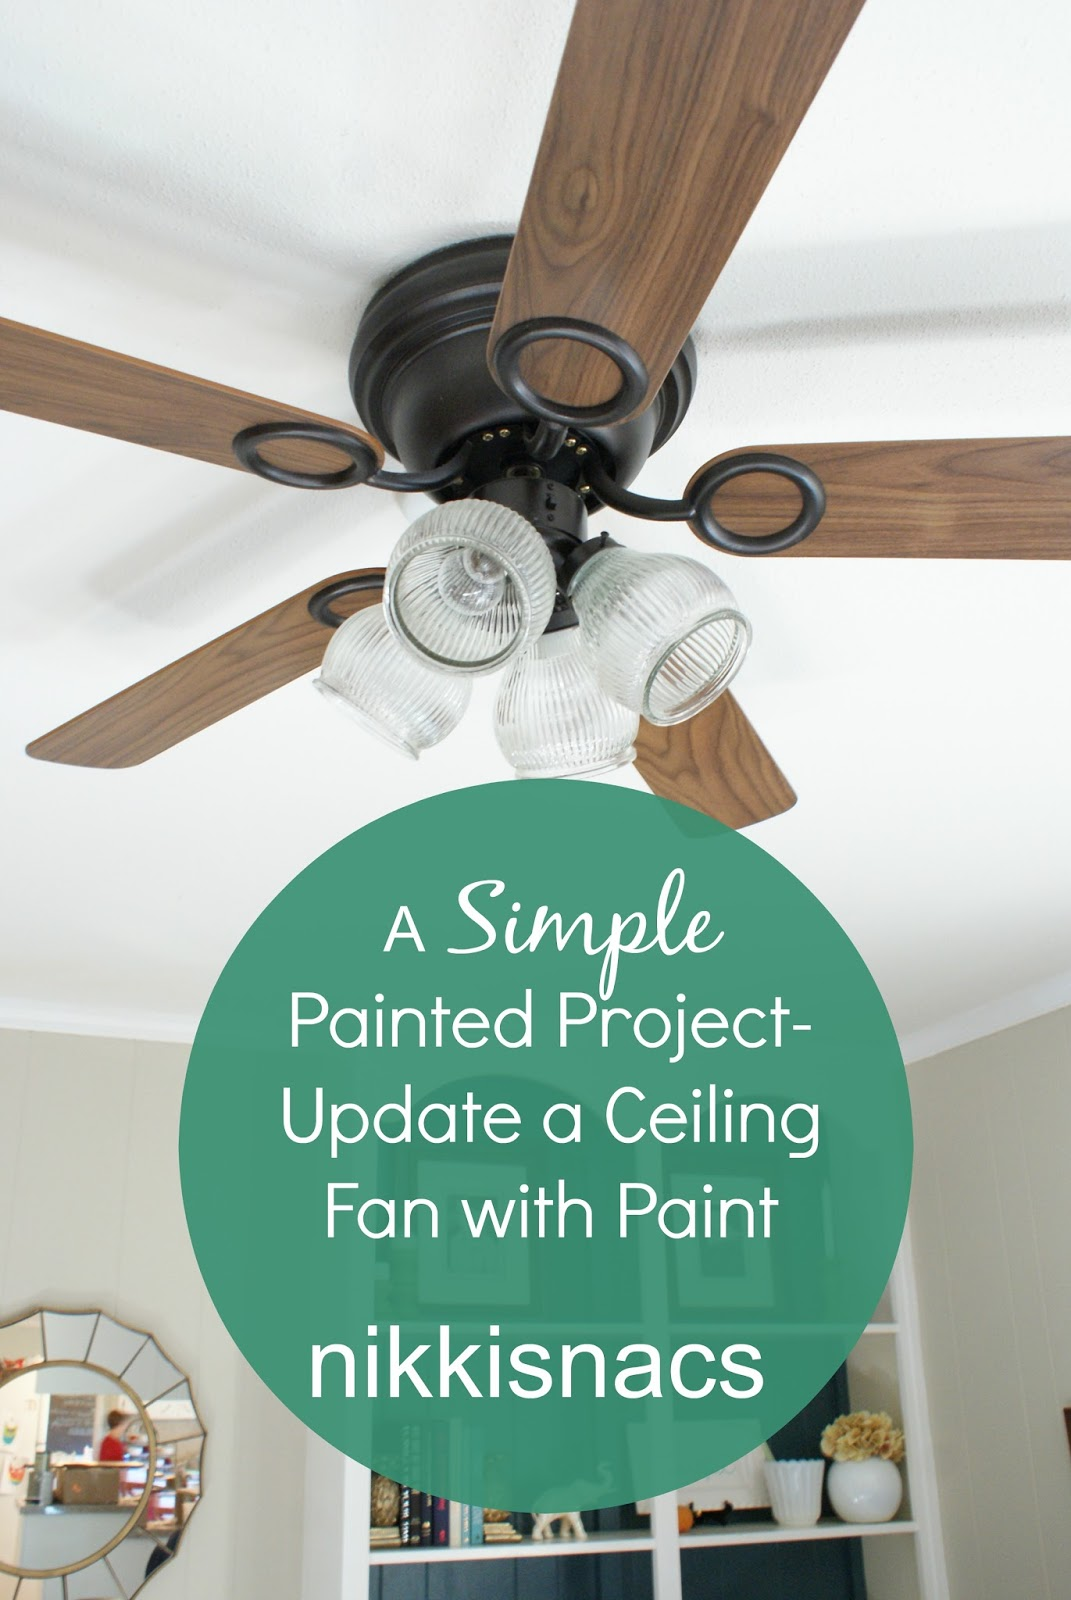 Nikkis nacs a simple painted project update a ceiling fan with paint a simple painted project update a ceiling fan with paint mozeypictures Gallery